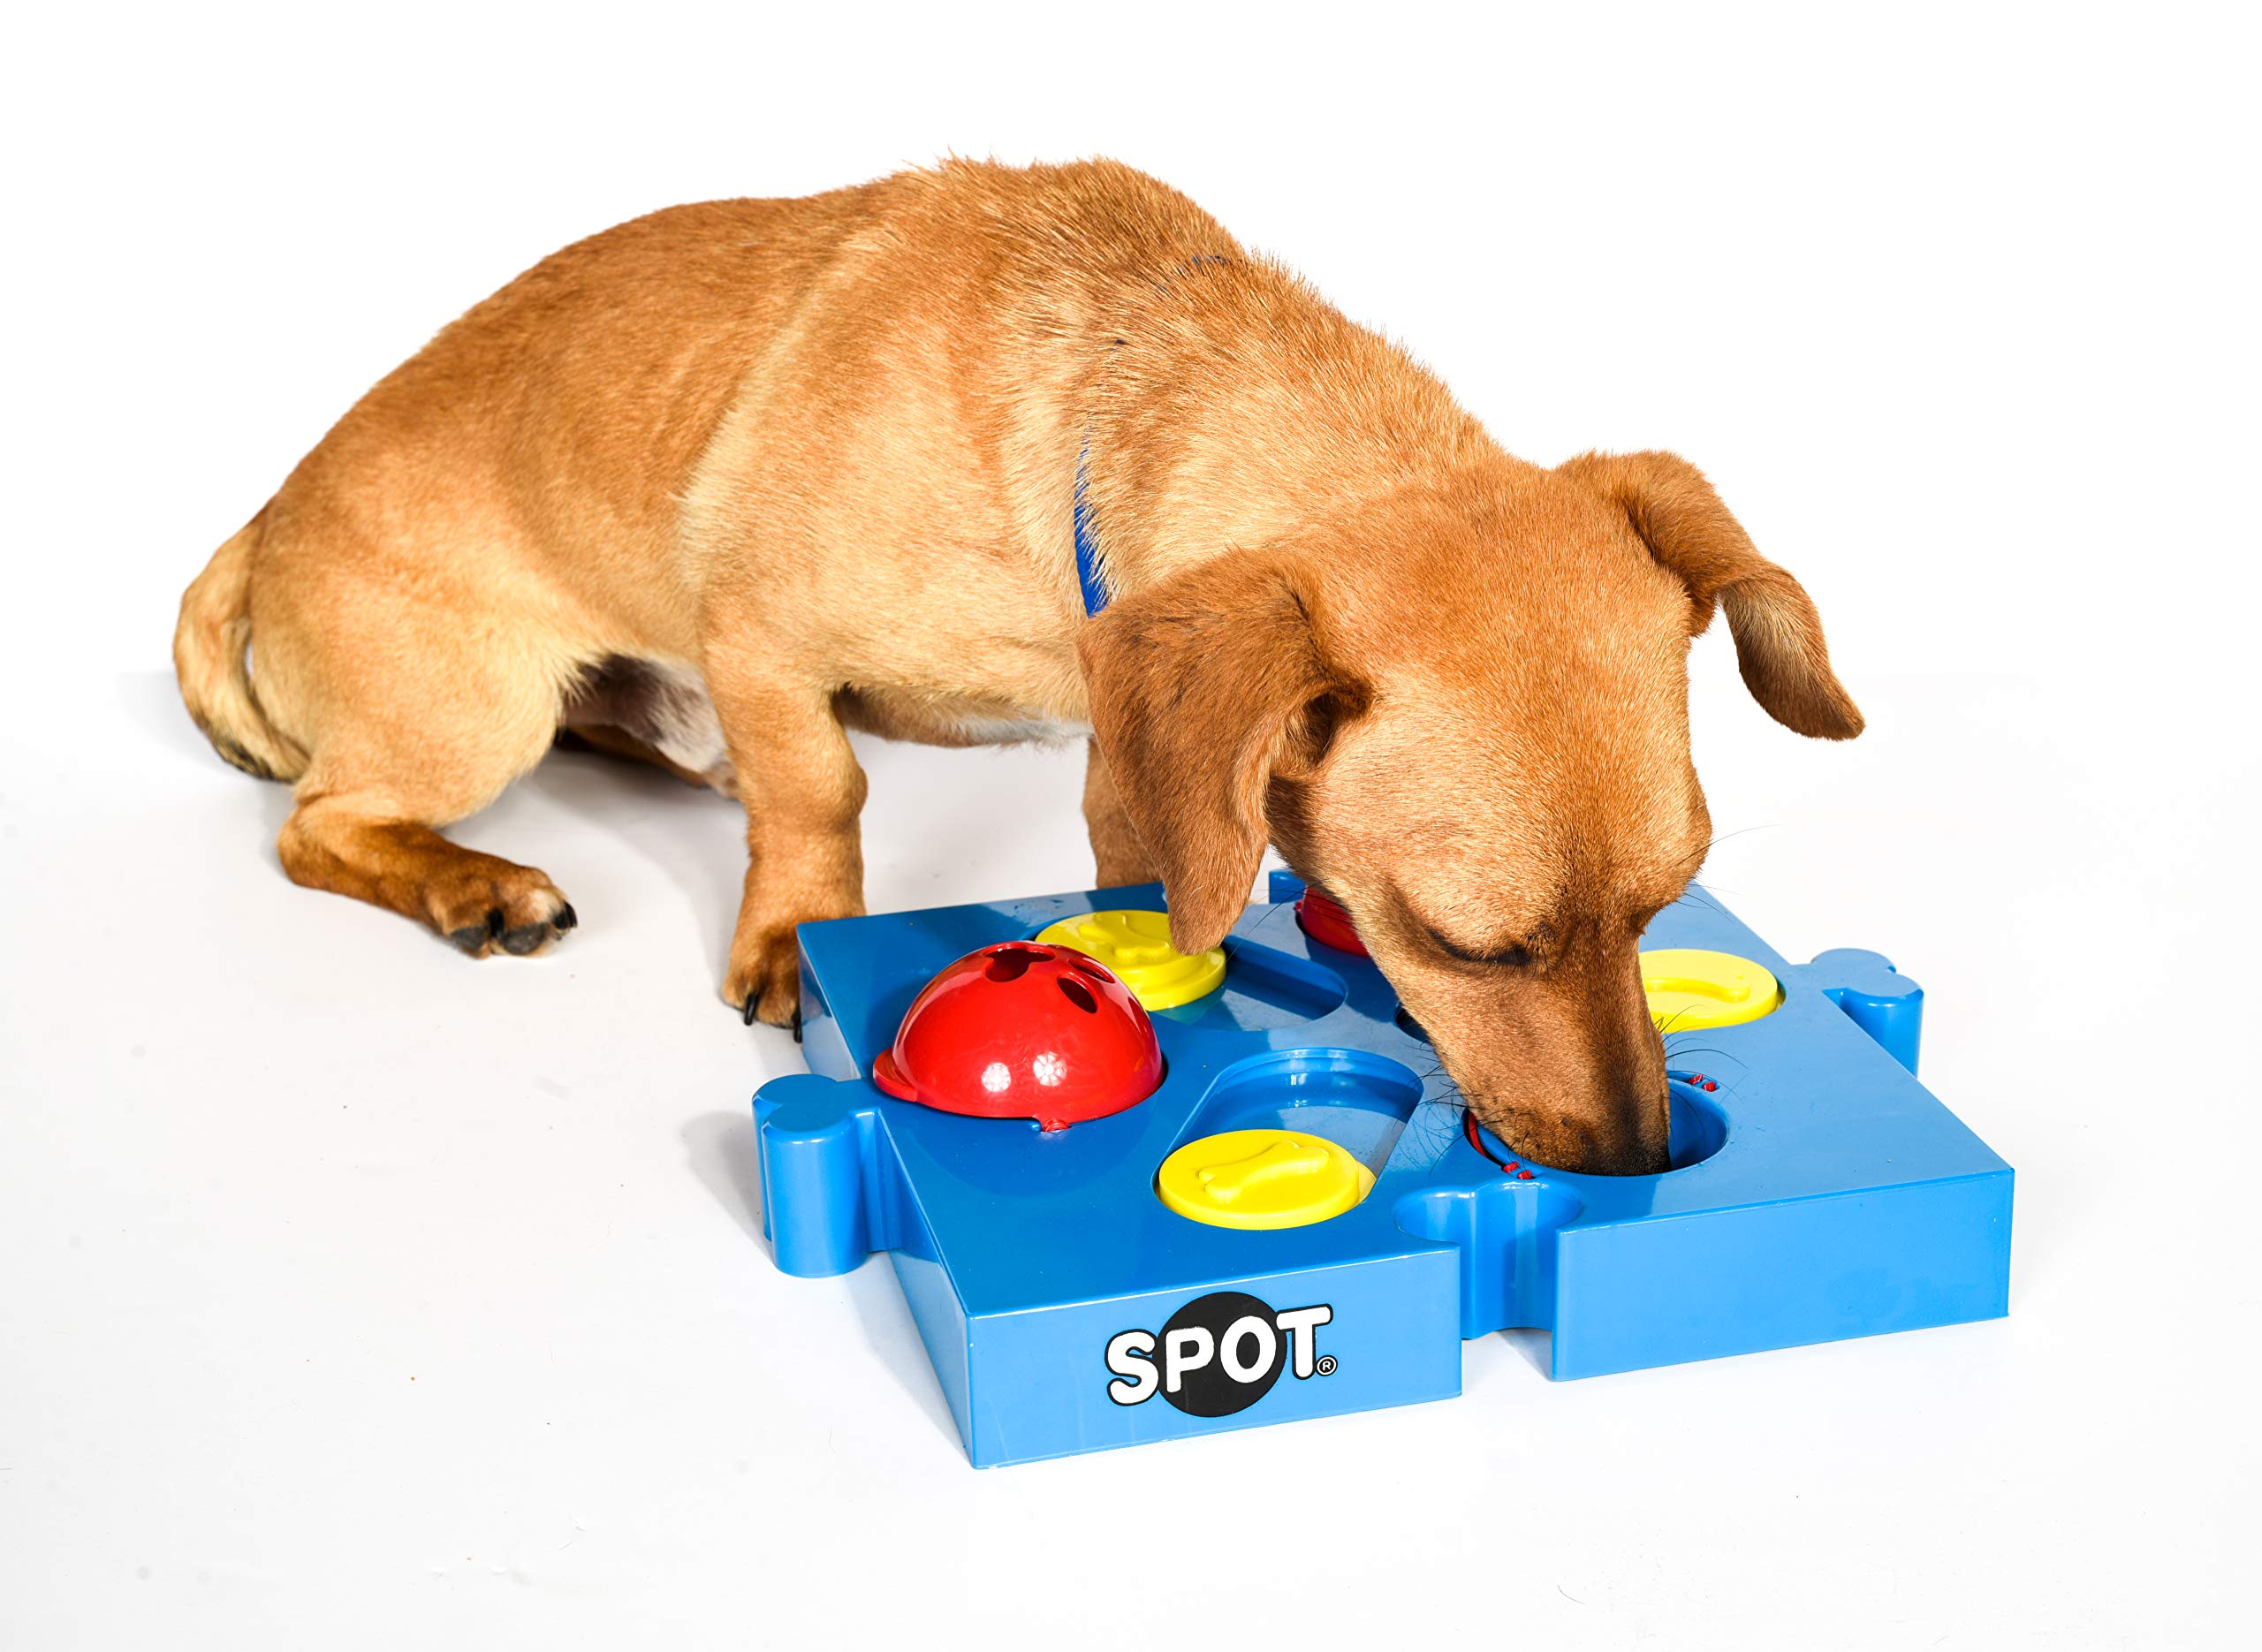 SPOT Seek-a-Treat Flip 'N Slide Treat Dispenser for Dogs | Dog Treat Dispenser | Dog Treat Dispenser Toy | Interactive Puzzle | Dog Treat Toys for Boredom | Dog Treat Toy Puzzle | Dog Toy Games